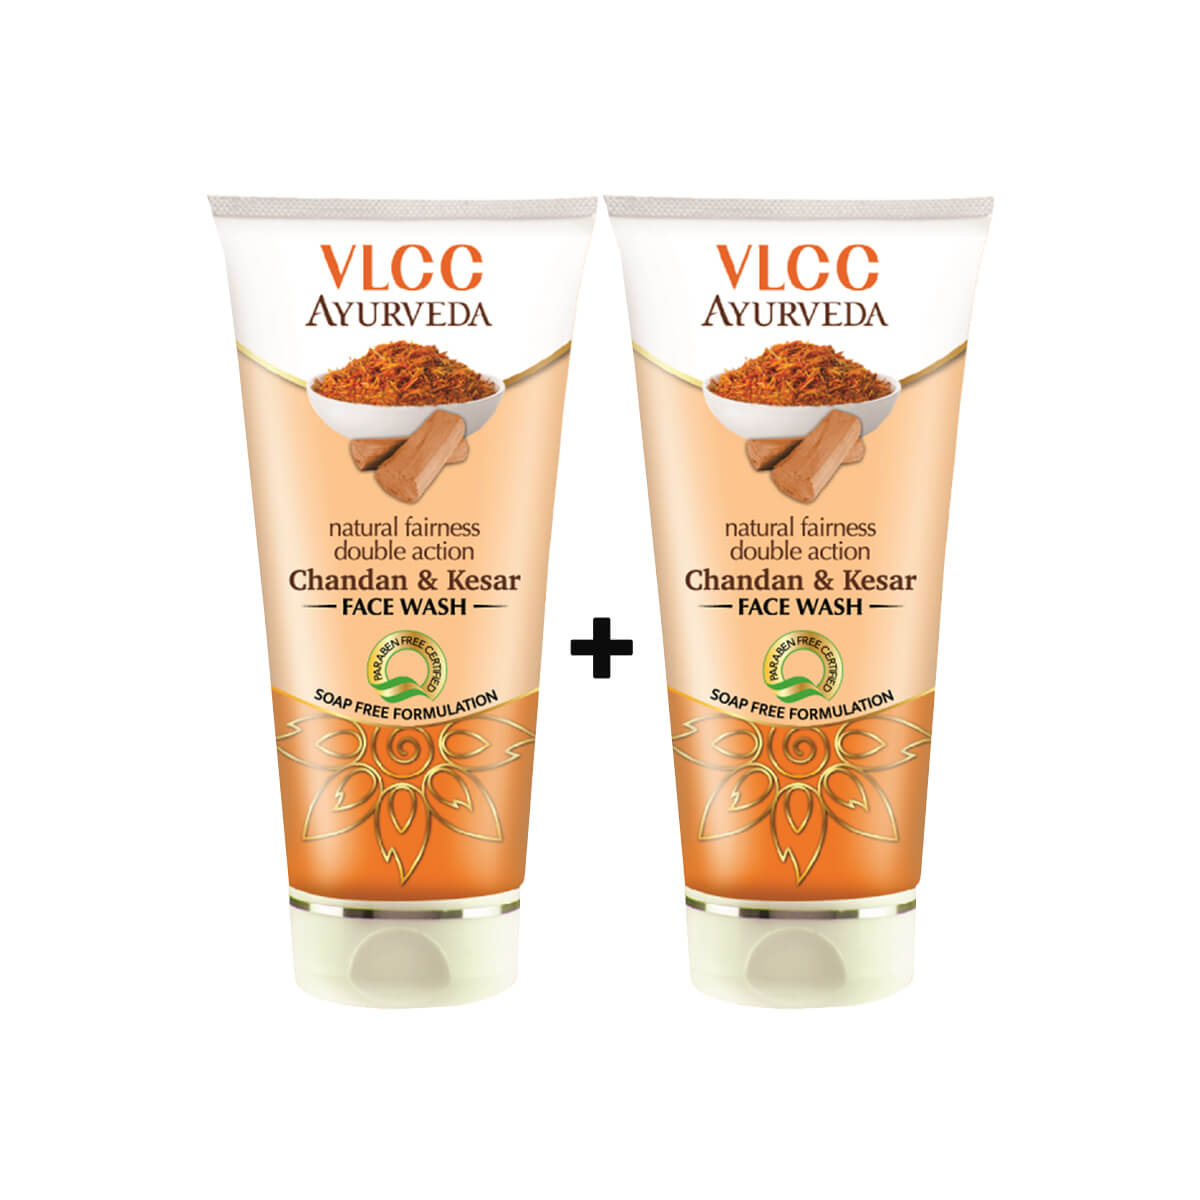 VLCC Chandan Kesar Face wash  ( Buy 1 Get 1 FREE)